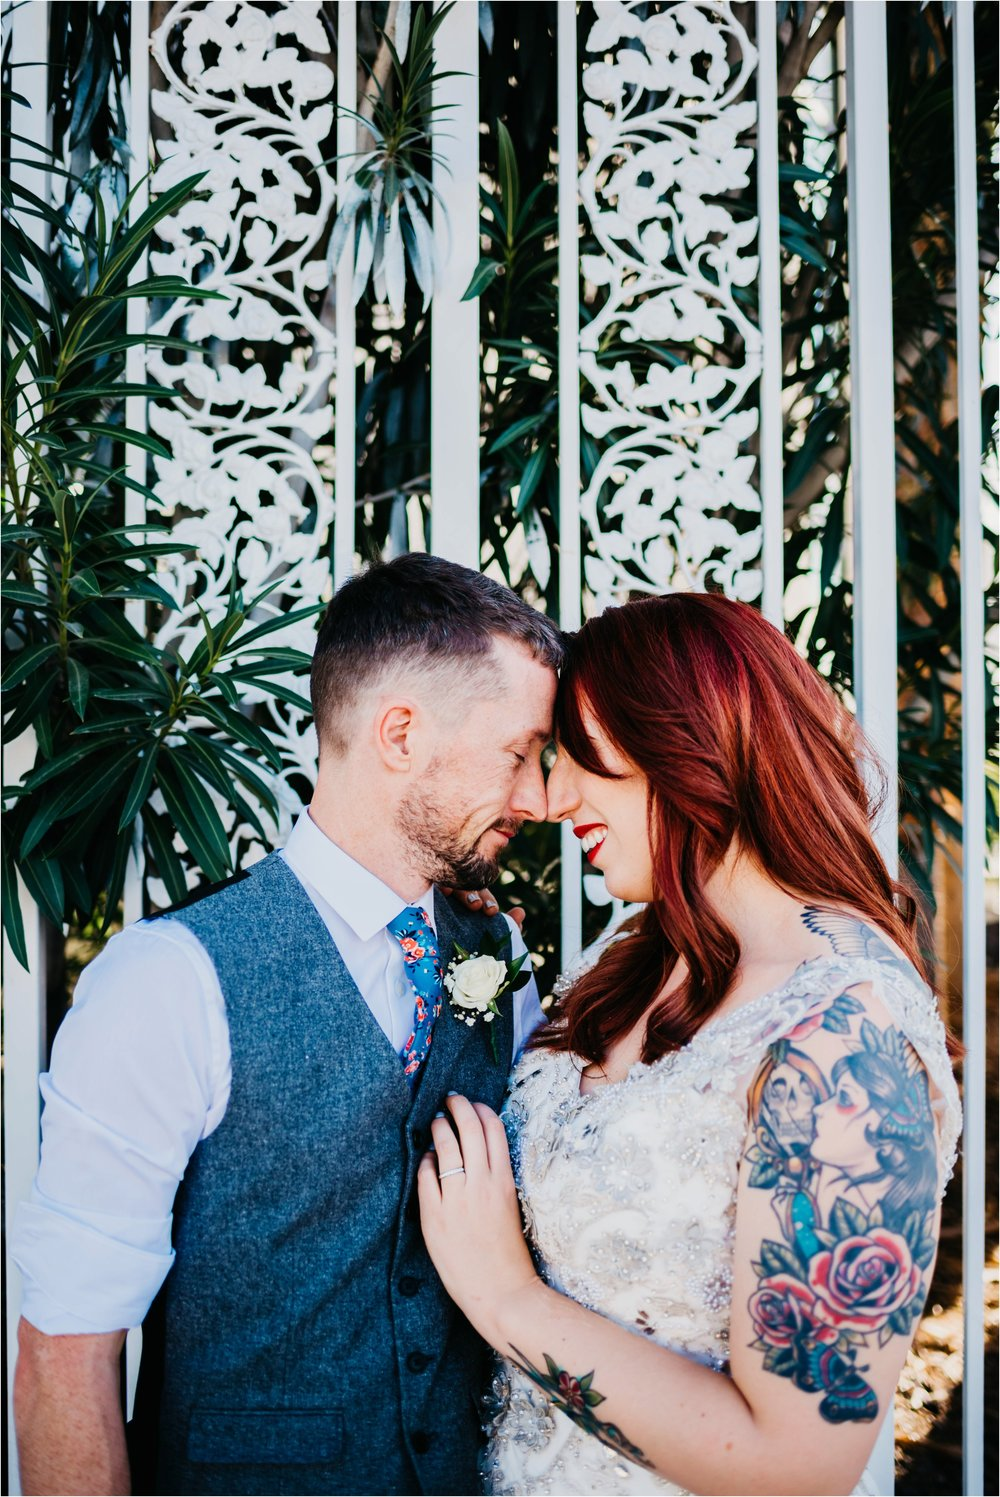 Vegas elopement destination wedding photographer_0125.jpg